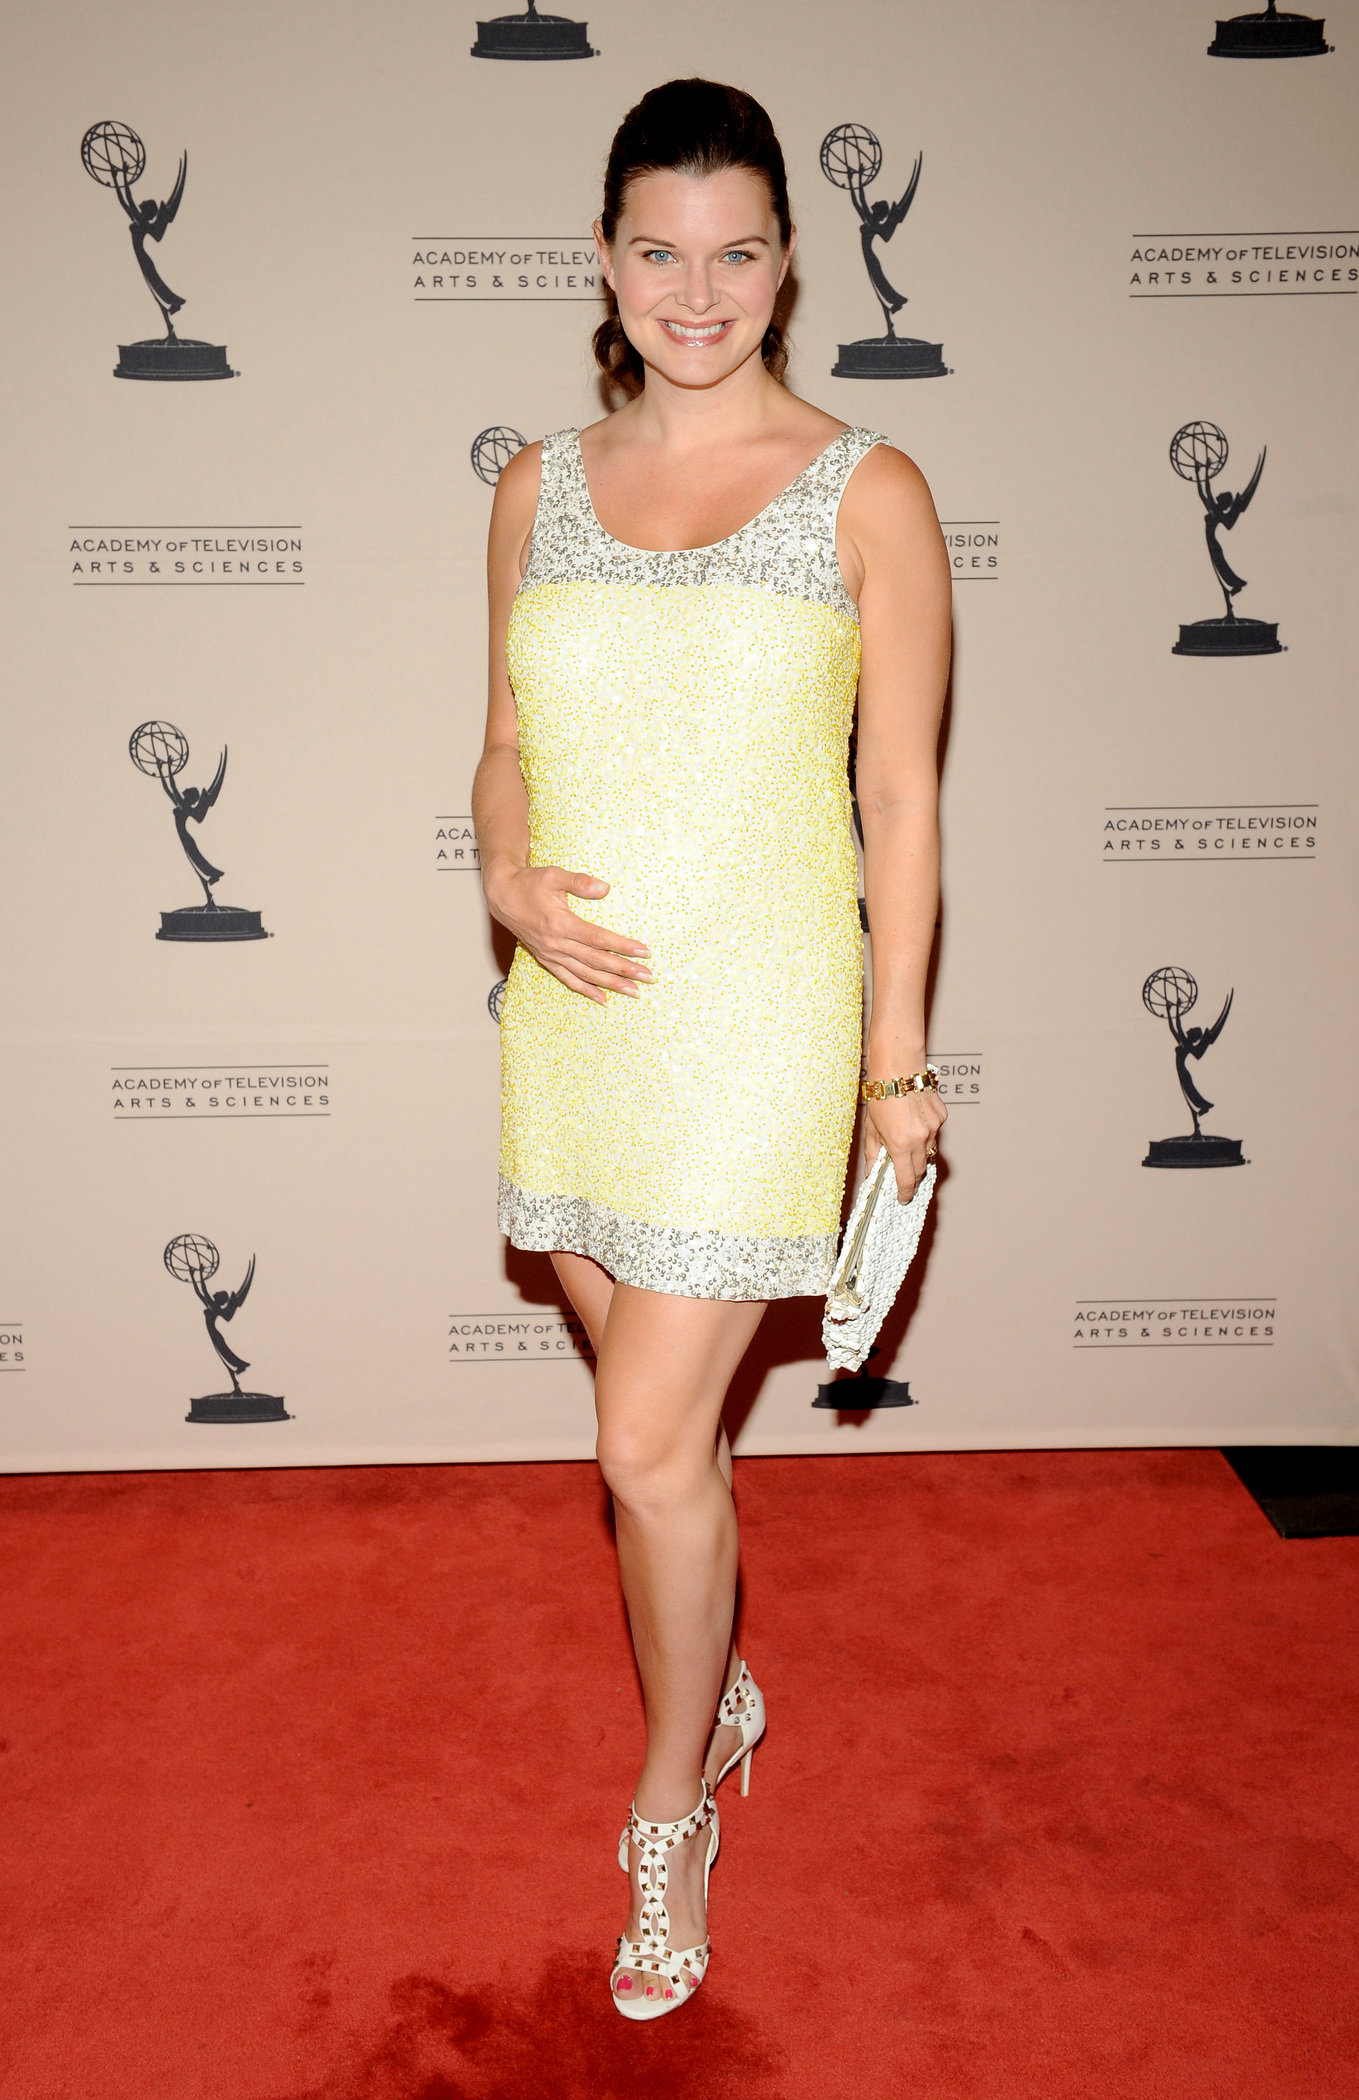 Heather Tom attends the 39th annual daytime Emmy Awards nominees reception at SLS Hotel on June 14, 2012 in Beverly Hills, California